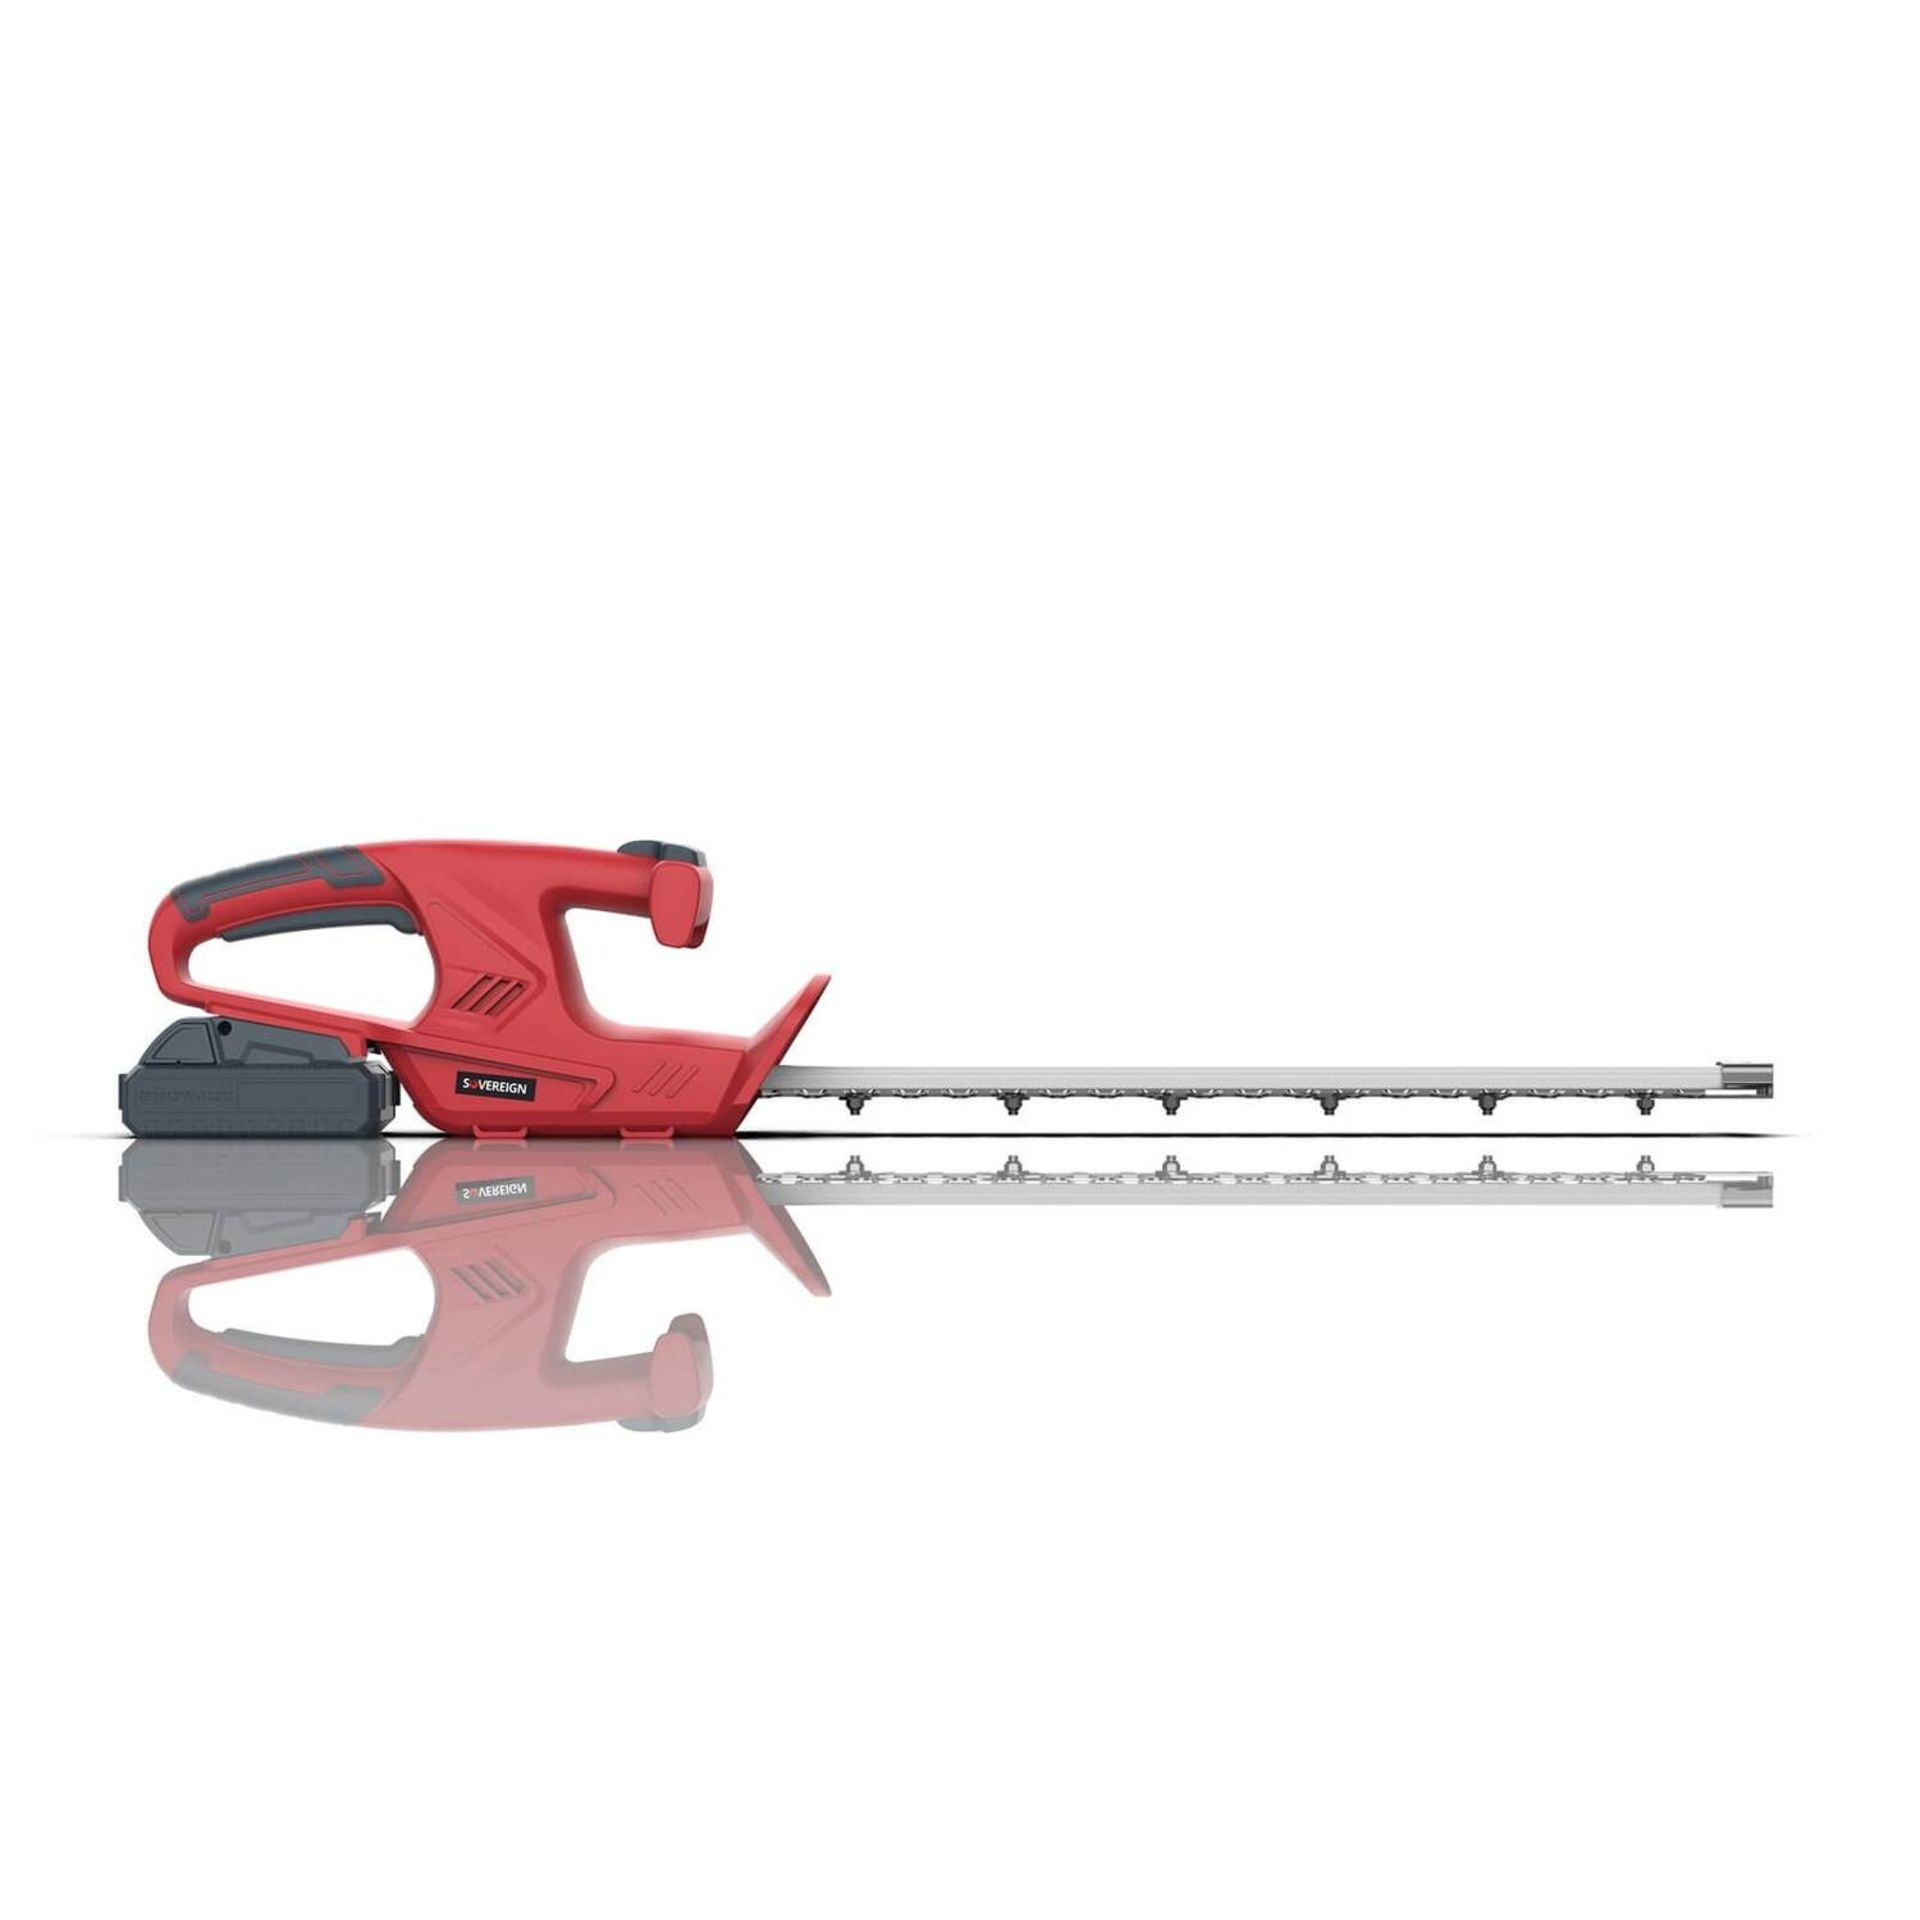 (P9) 2x Items. 1x Sovereign 18V Cordless Hedge Trimmer 45cm RRP £49. Contents Appear As New – Clea